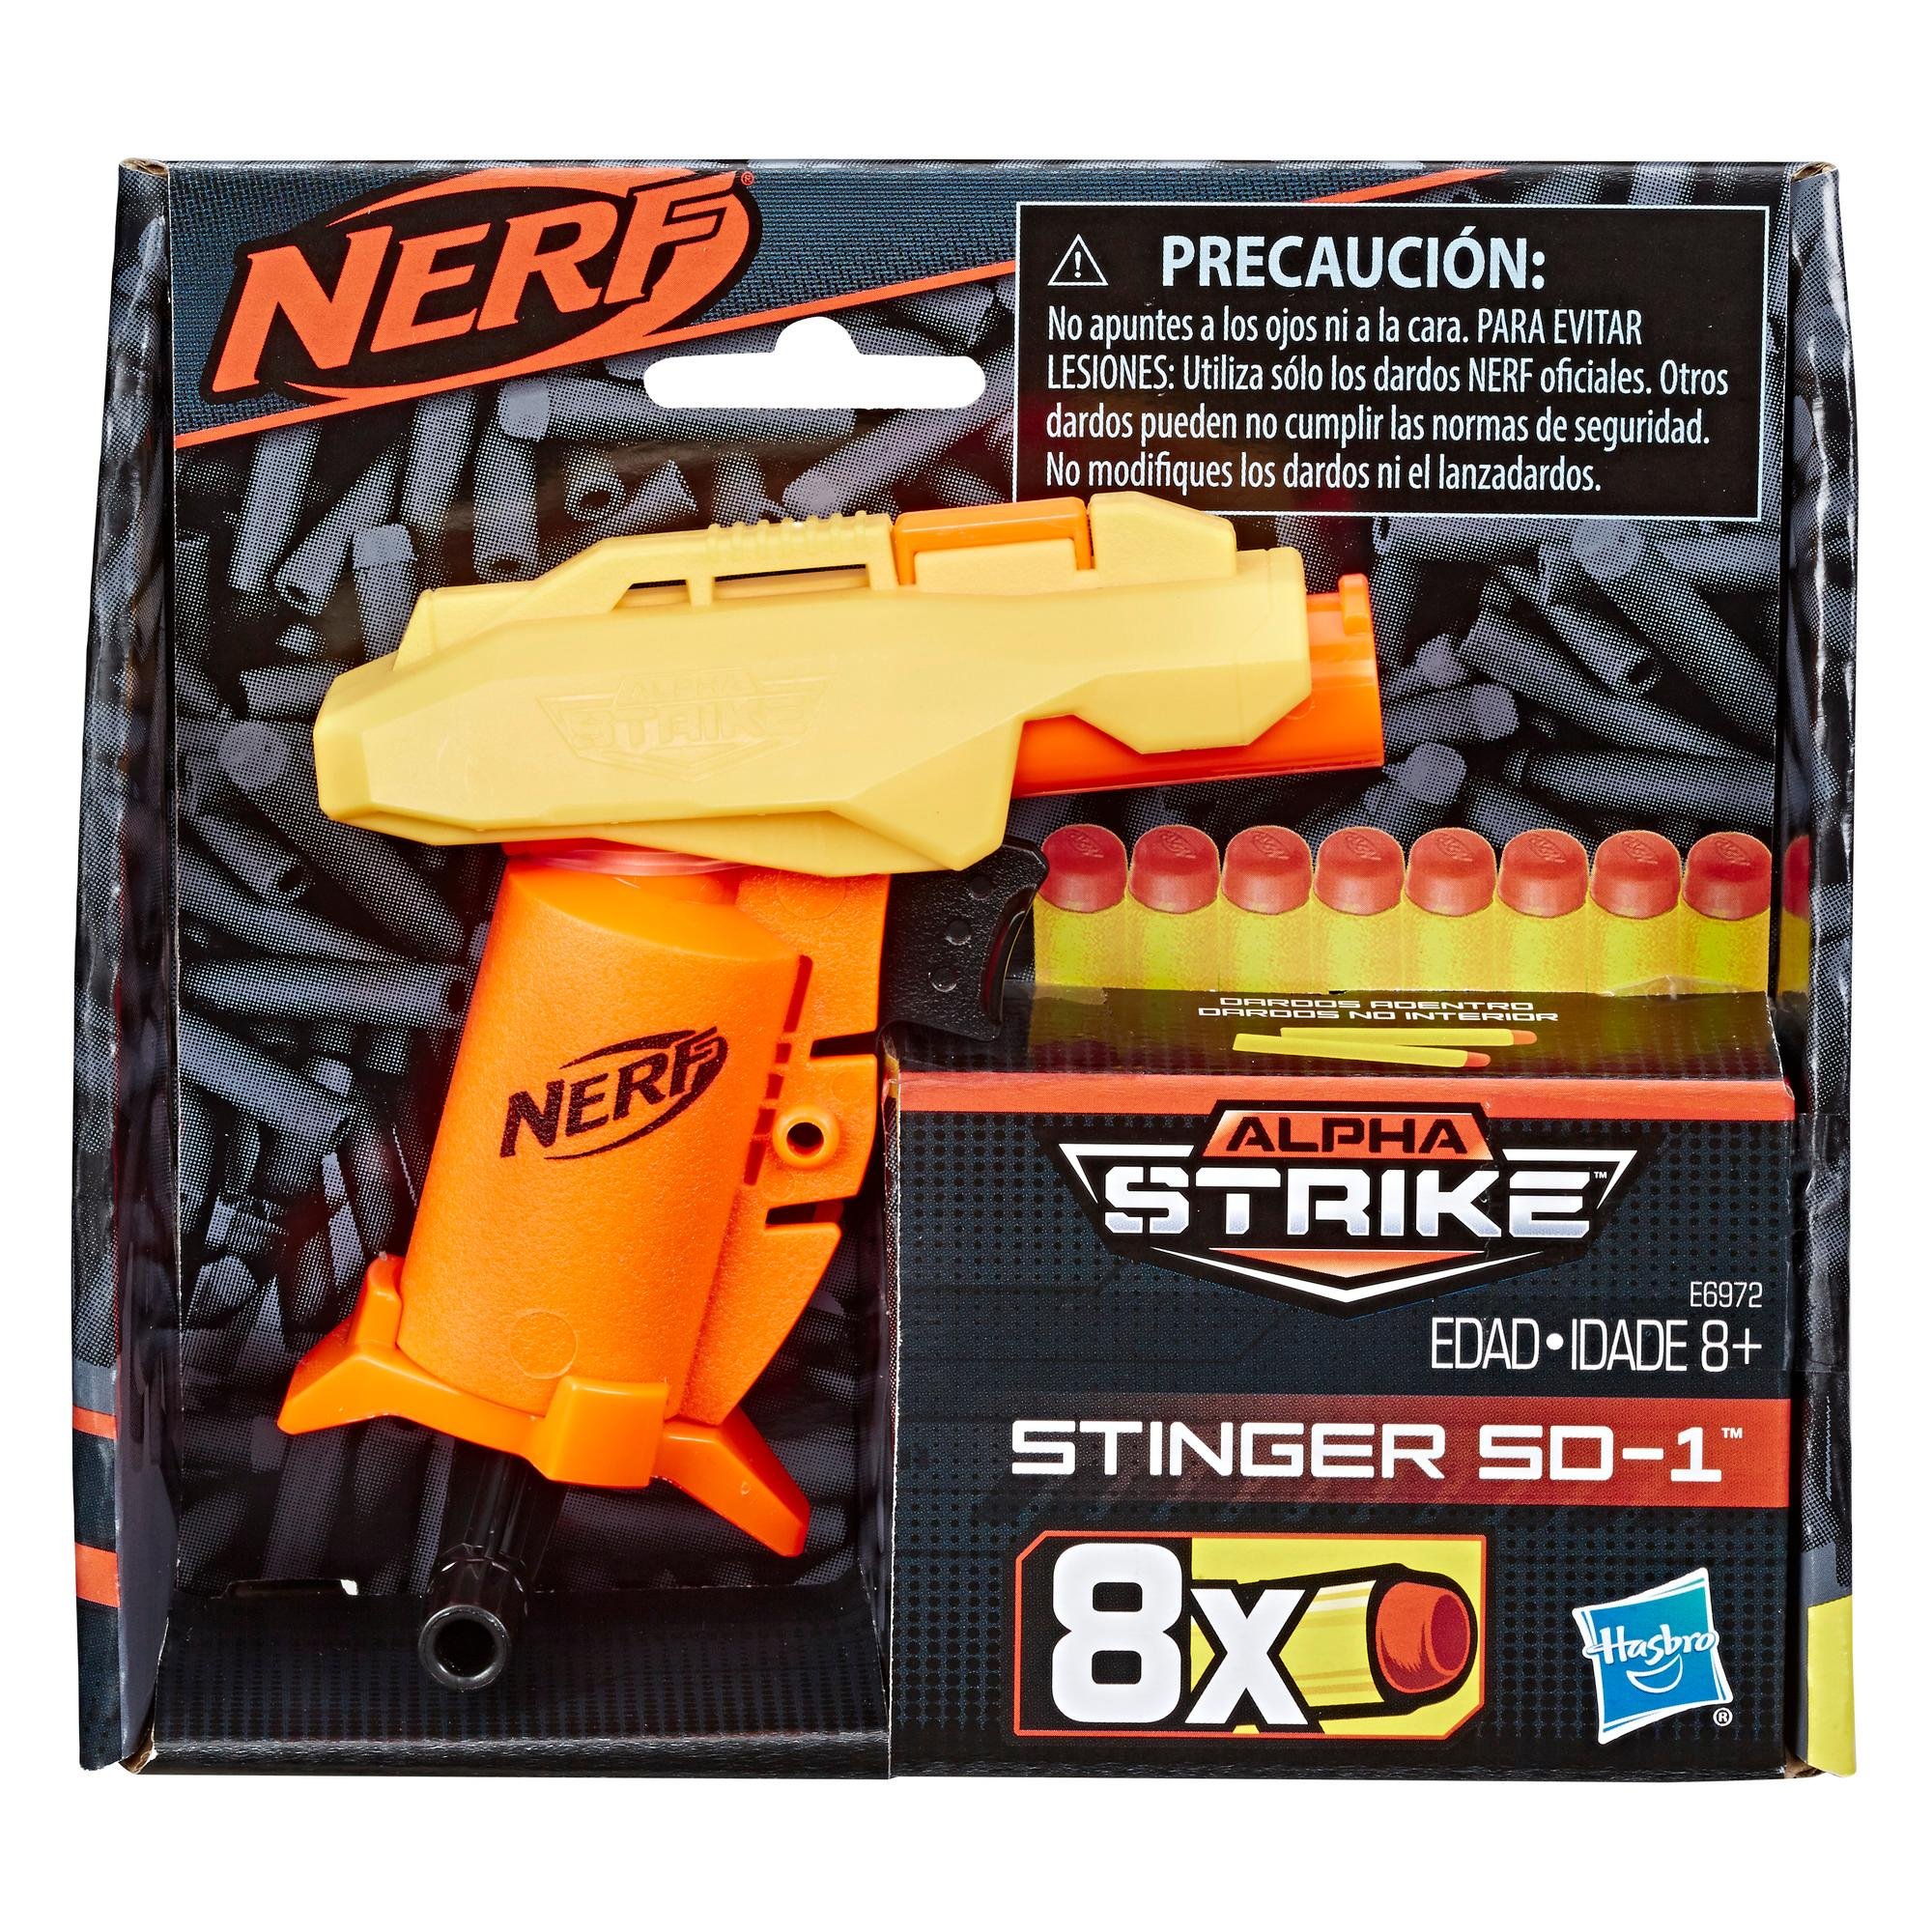 Stinger SD-1 Nerf Alpha Strike Toy Blaster